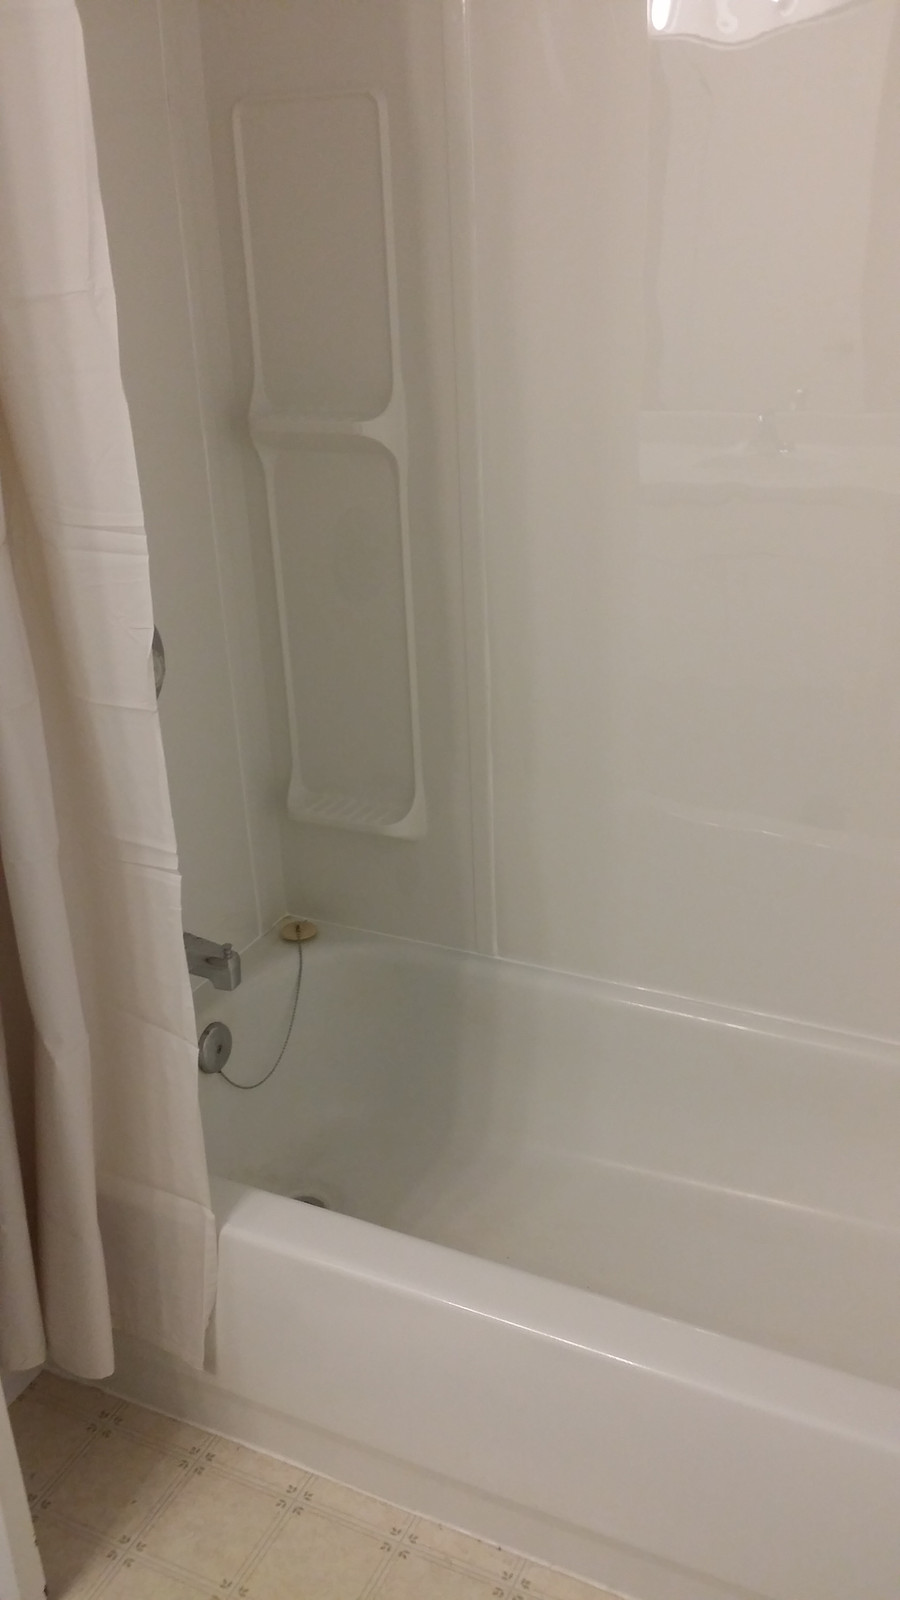 5 Piece Tub Surround Replacement Completed